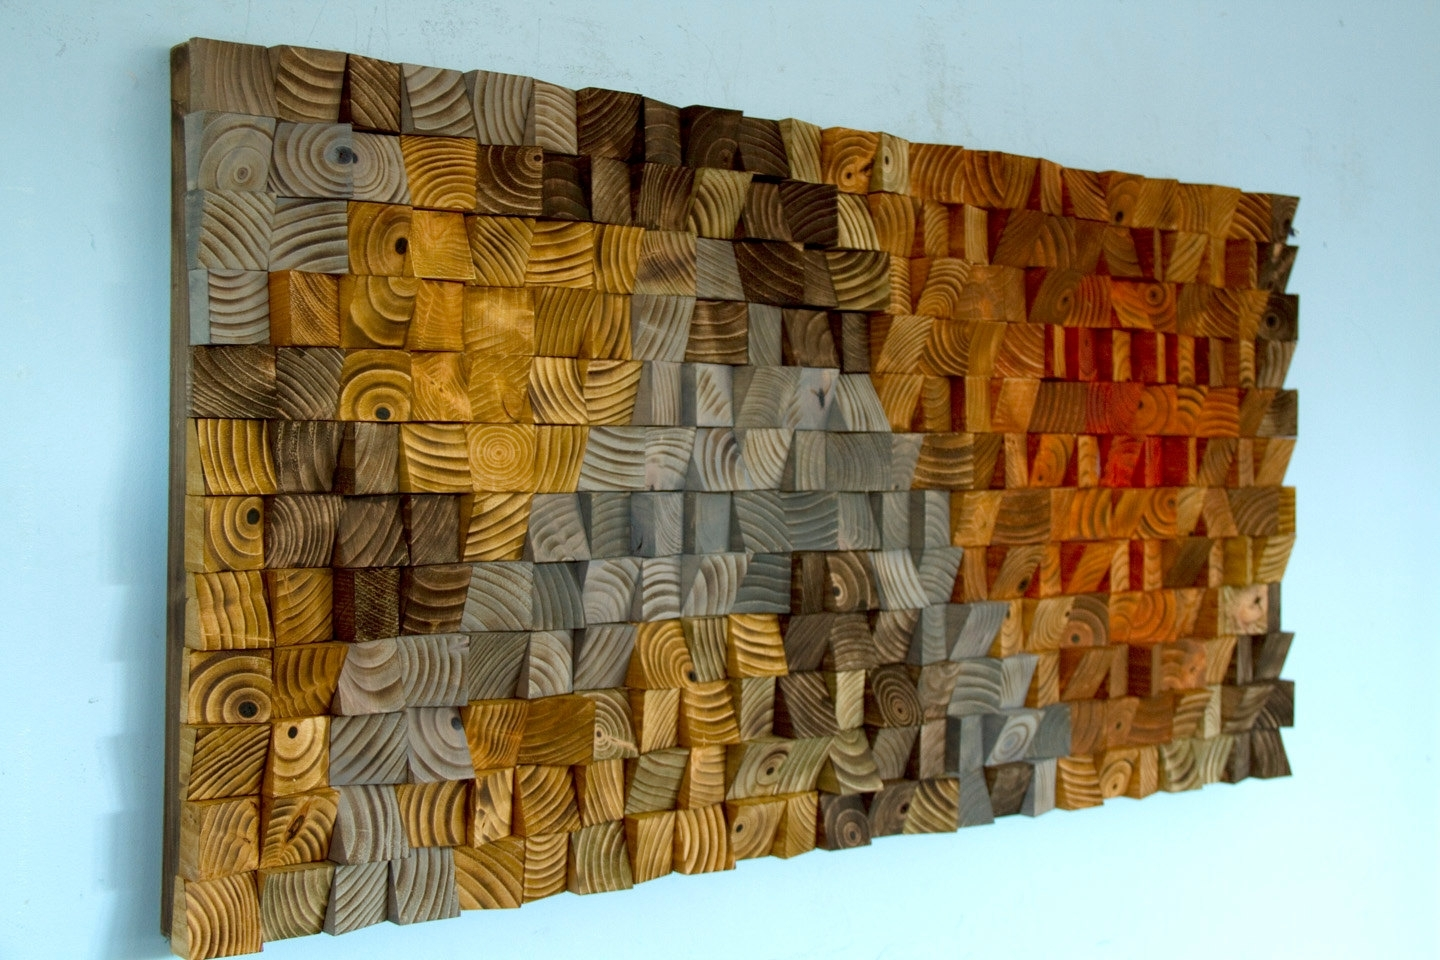 Large Rustic Art, Wood Wall Sculpture, Abstract Painting On Wood For Most Popular Large Rustic Wall Art (Gallery 12 of 20)